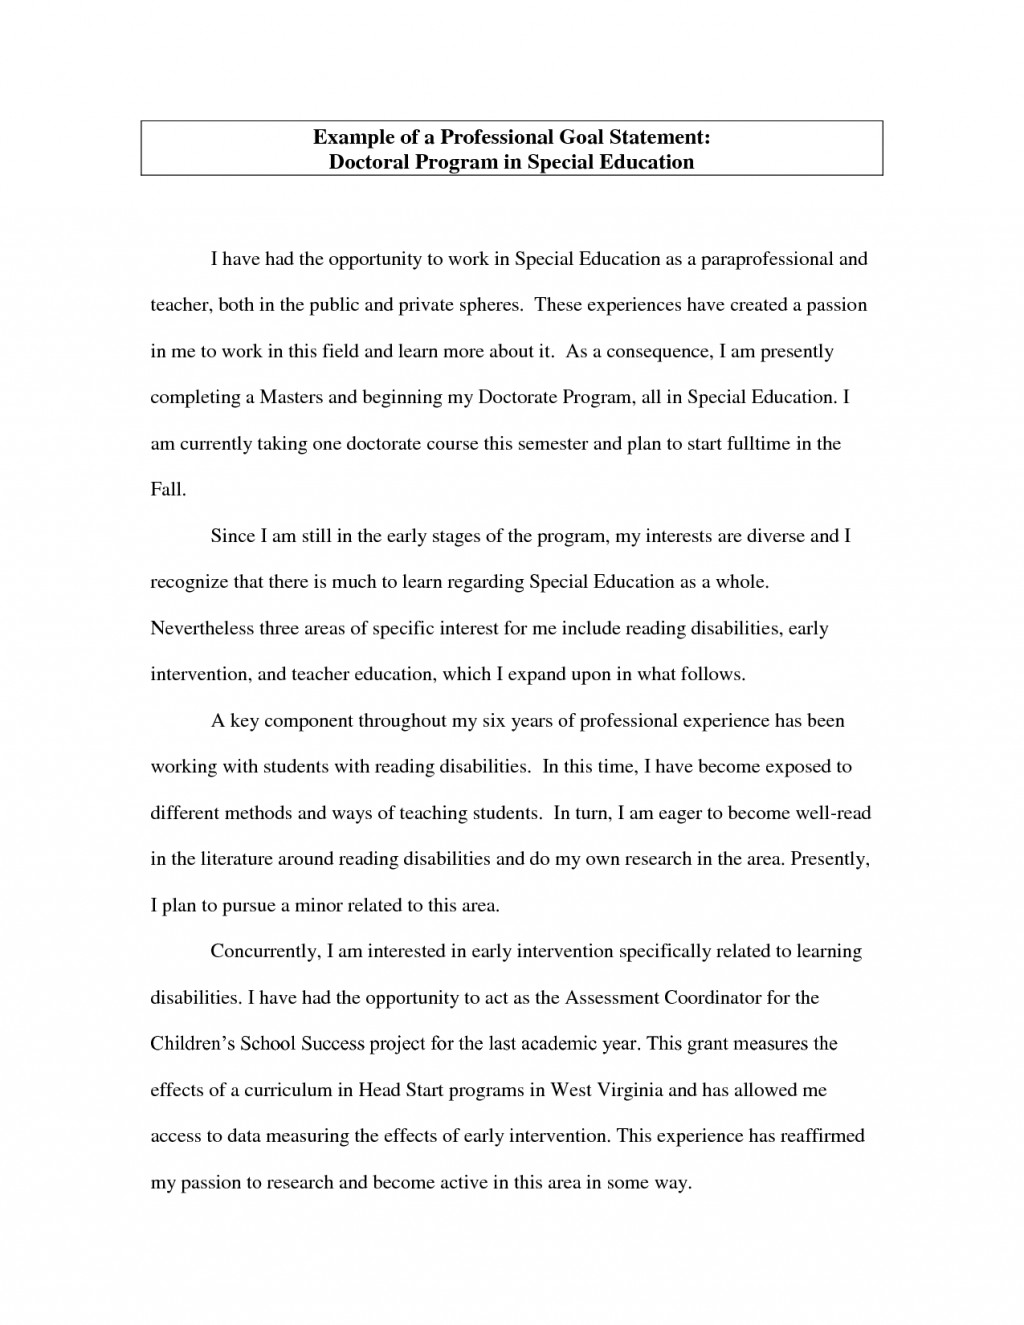 018 Career Related Research Paper Topics Essay Examples School Reports In Class Of Their Own Telegraph The Goal Statement Zdxttkpg Nursing20 Singular Large